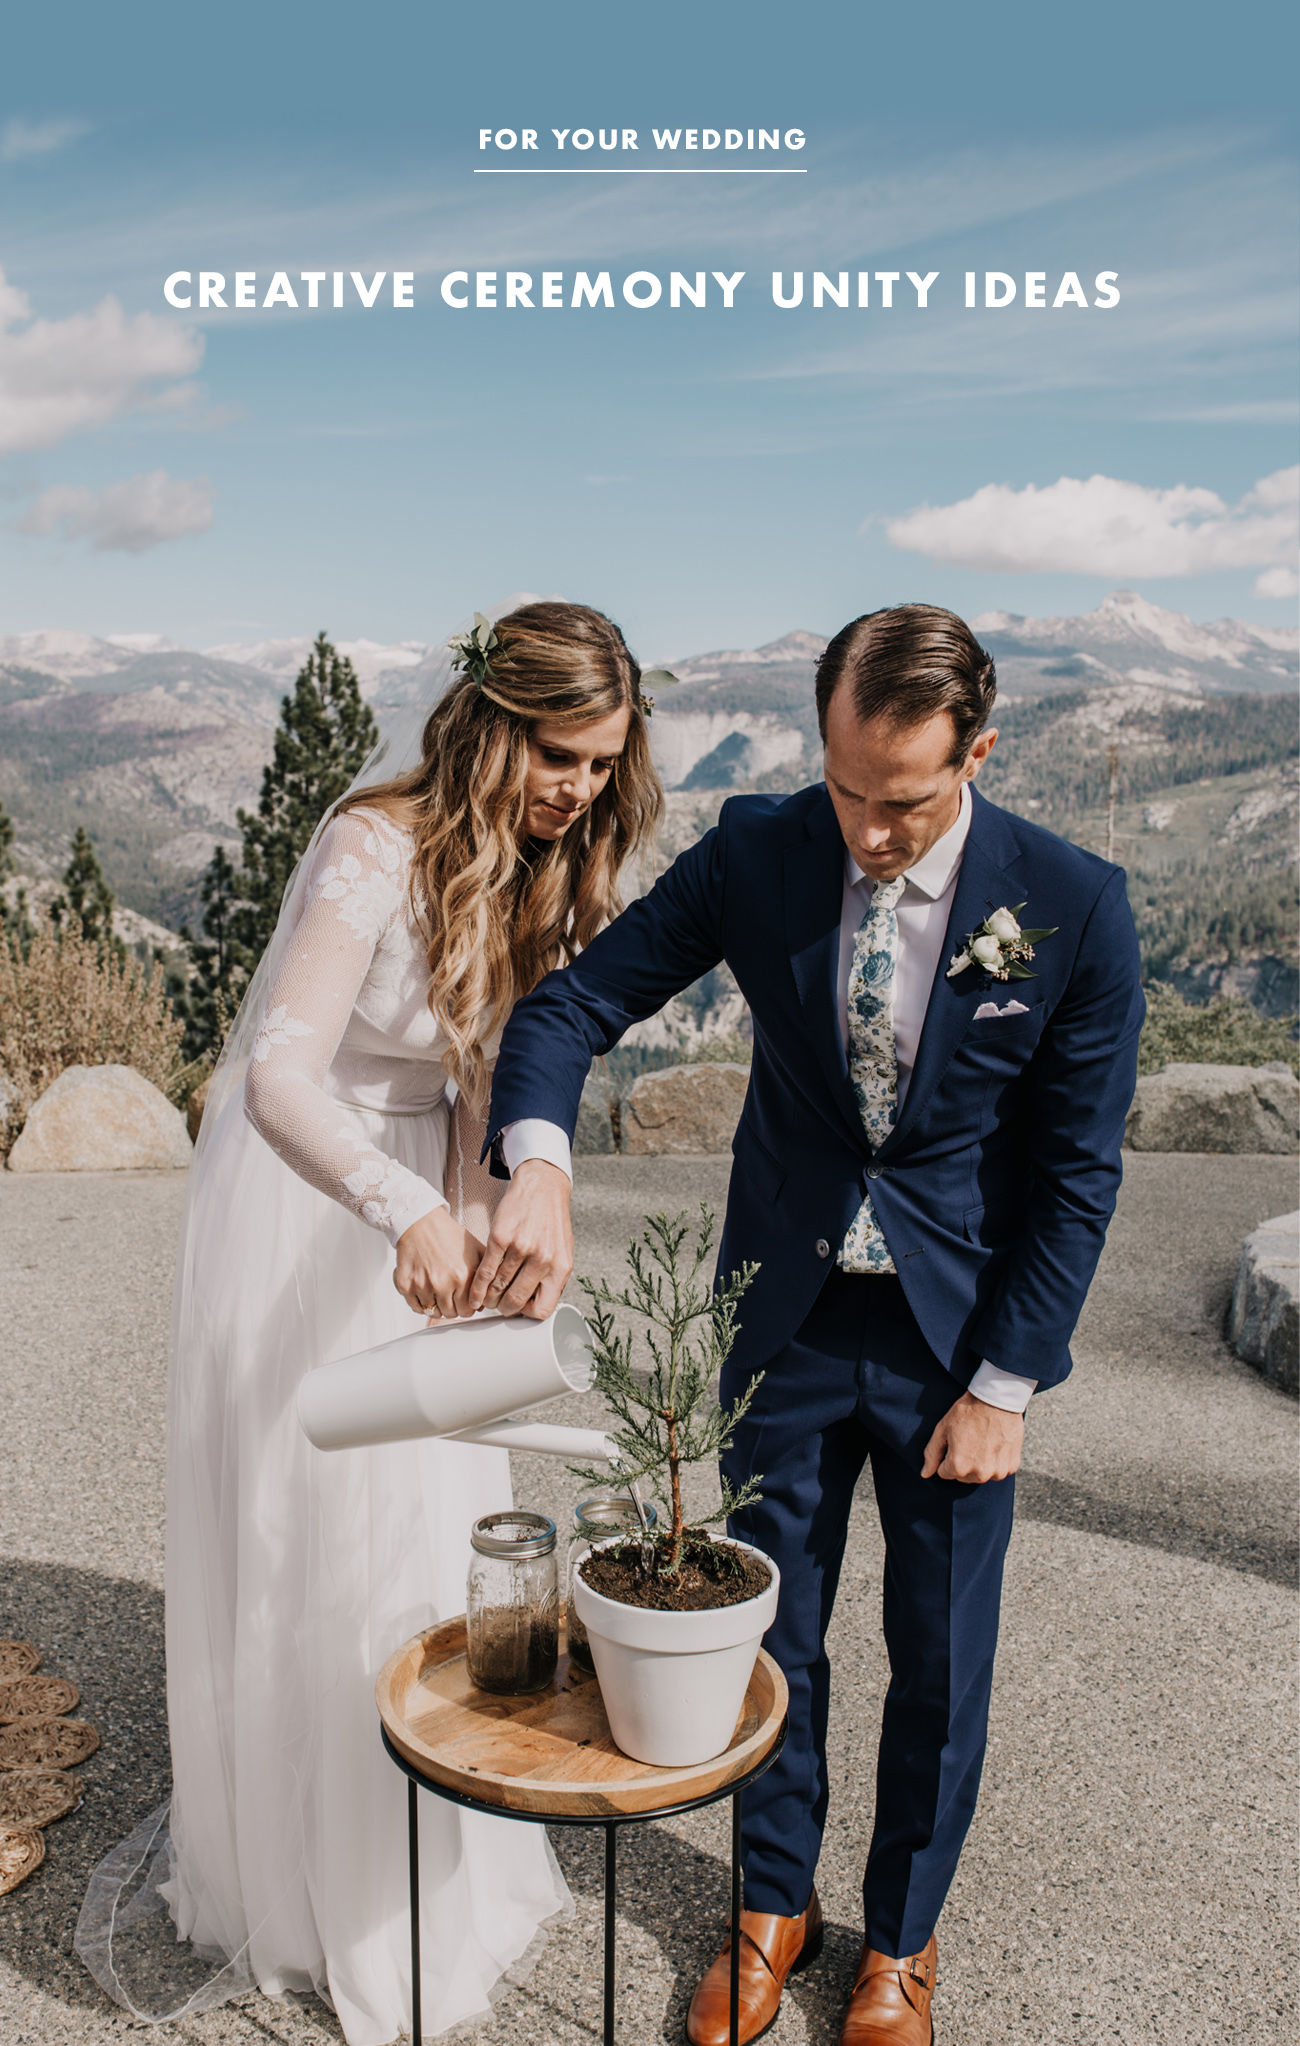 Creative + Meaningful Ceremony Unity Ideas